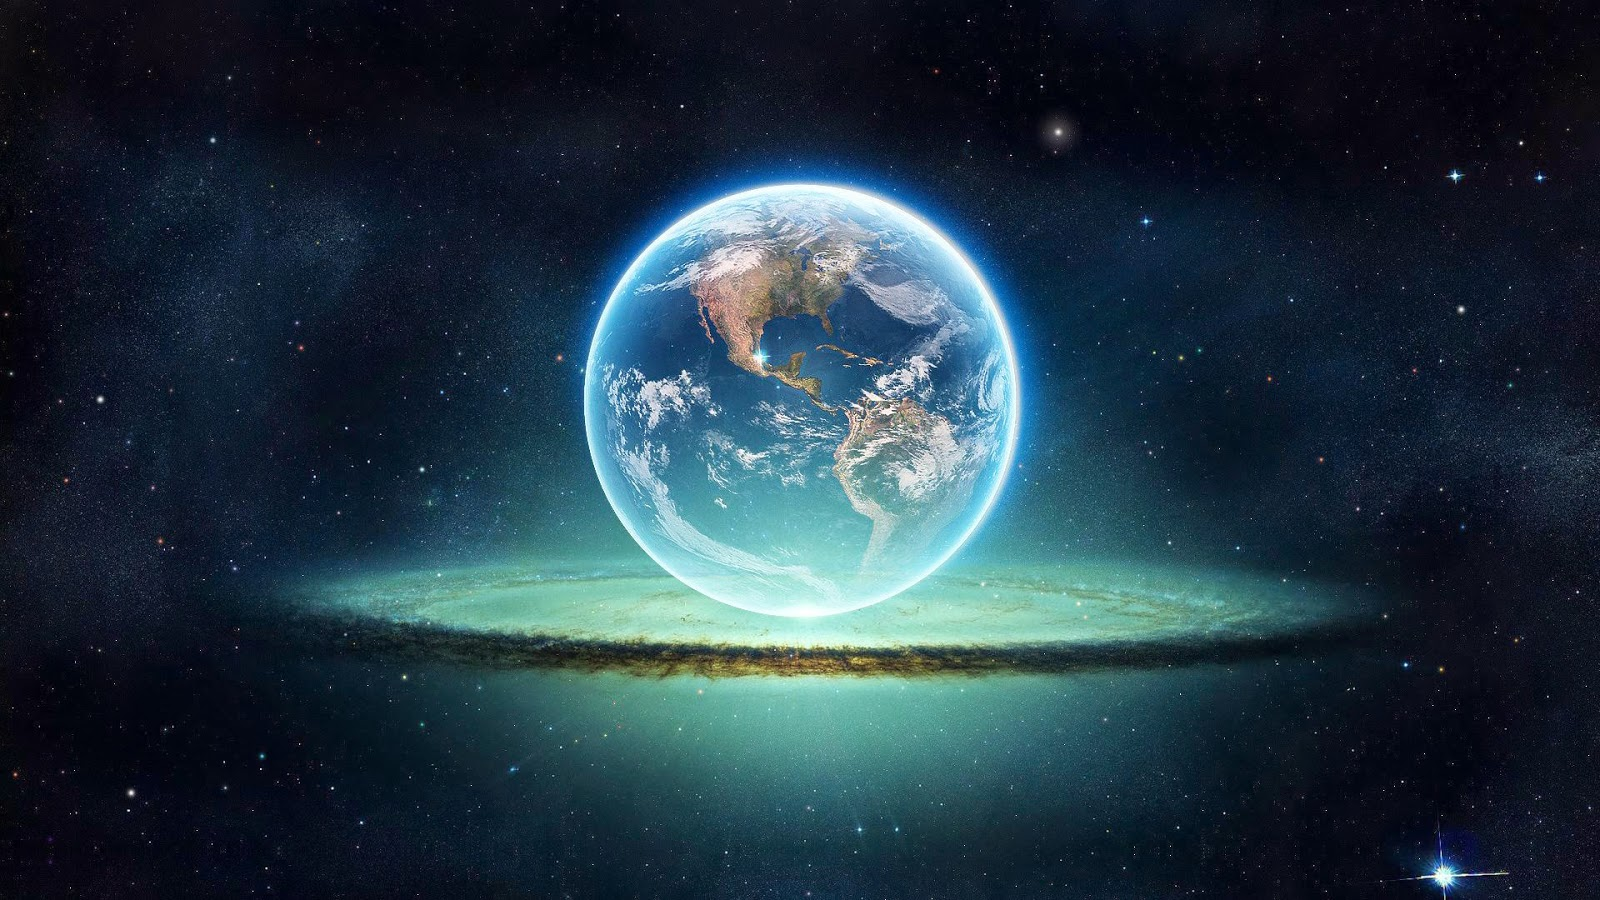 future of planet earth Aa michael 070405 new earth rises: earth changes and the future of the planet archangel michael and the crystal children through celia fenn dearest beings of light, at this time of change and transition, we ome to bring you encouragement and support.